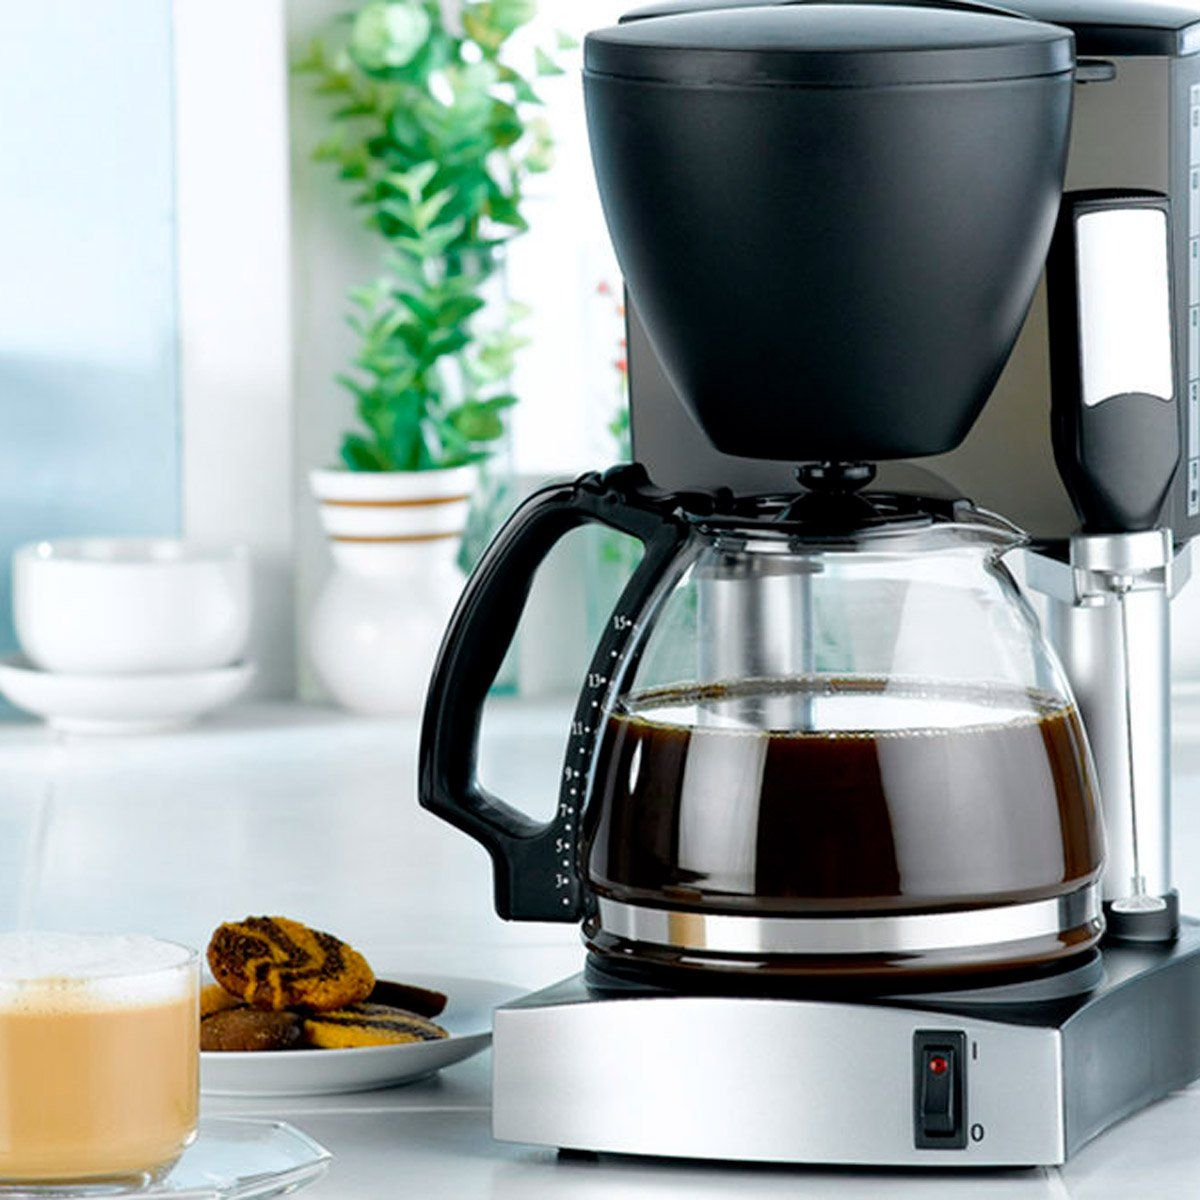 Your Coffee Maker May Be Loaded with Bacteria. Here's How